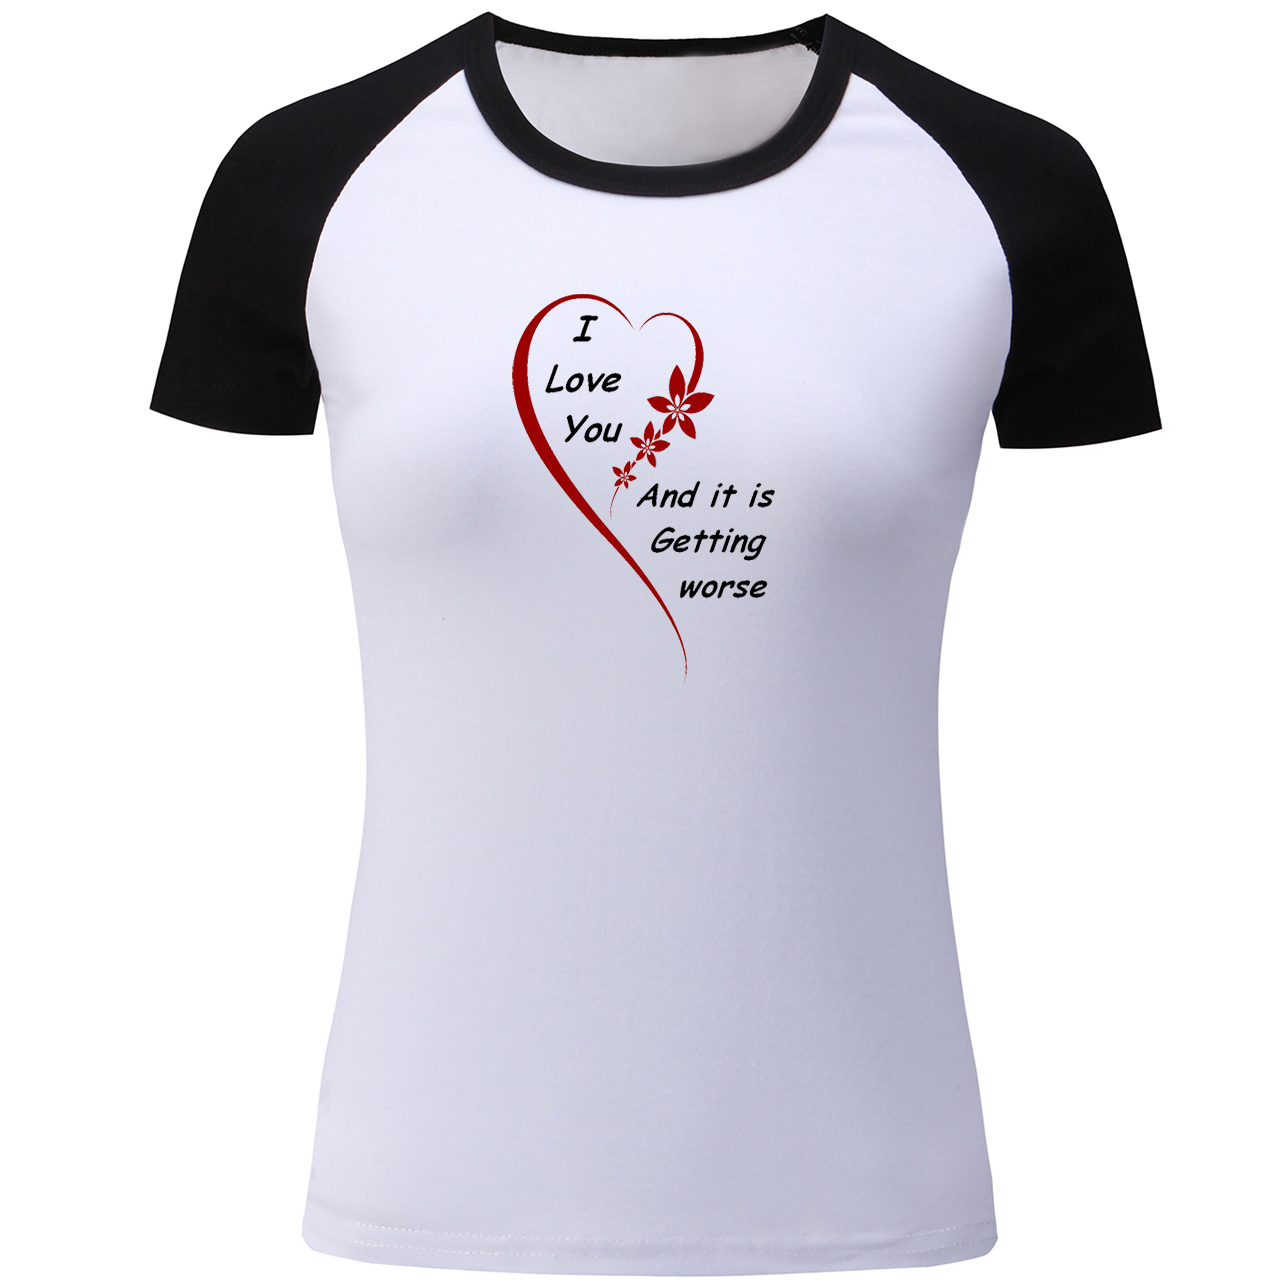 new release matching in colour hottest sale US $9.17 46% OFF|I Love You Love Quotes T Shirt Women Belive There is Good  in the Word Be The Good Tshirt for Lady Music Symbol Girl's T shirt-in ...